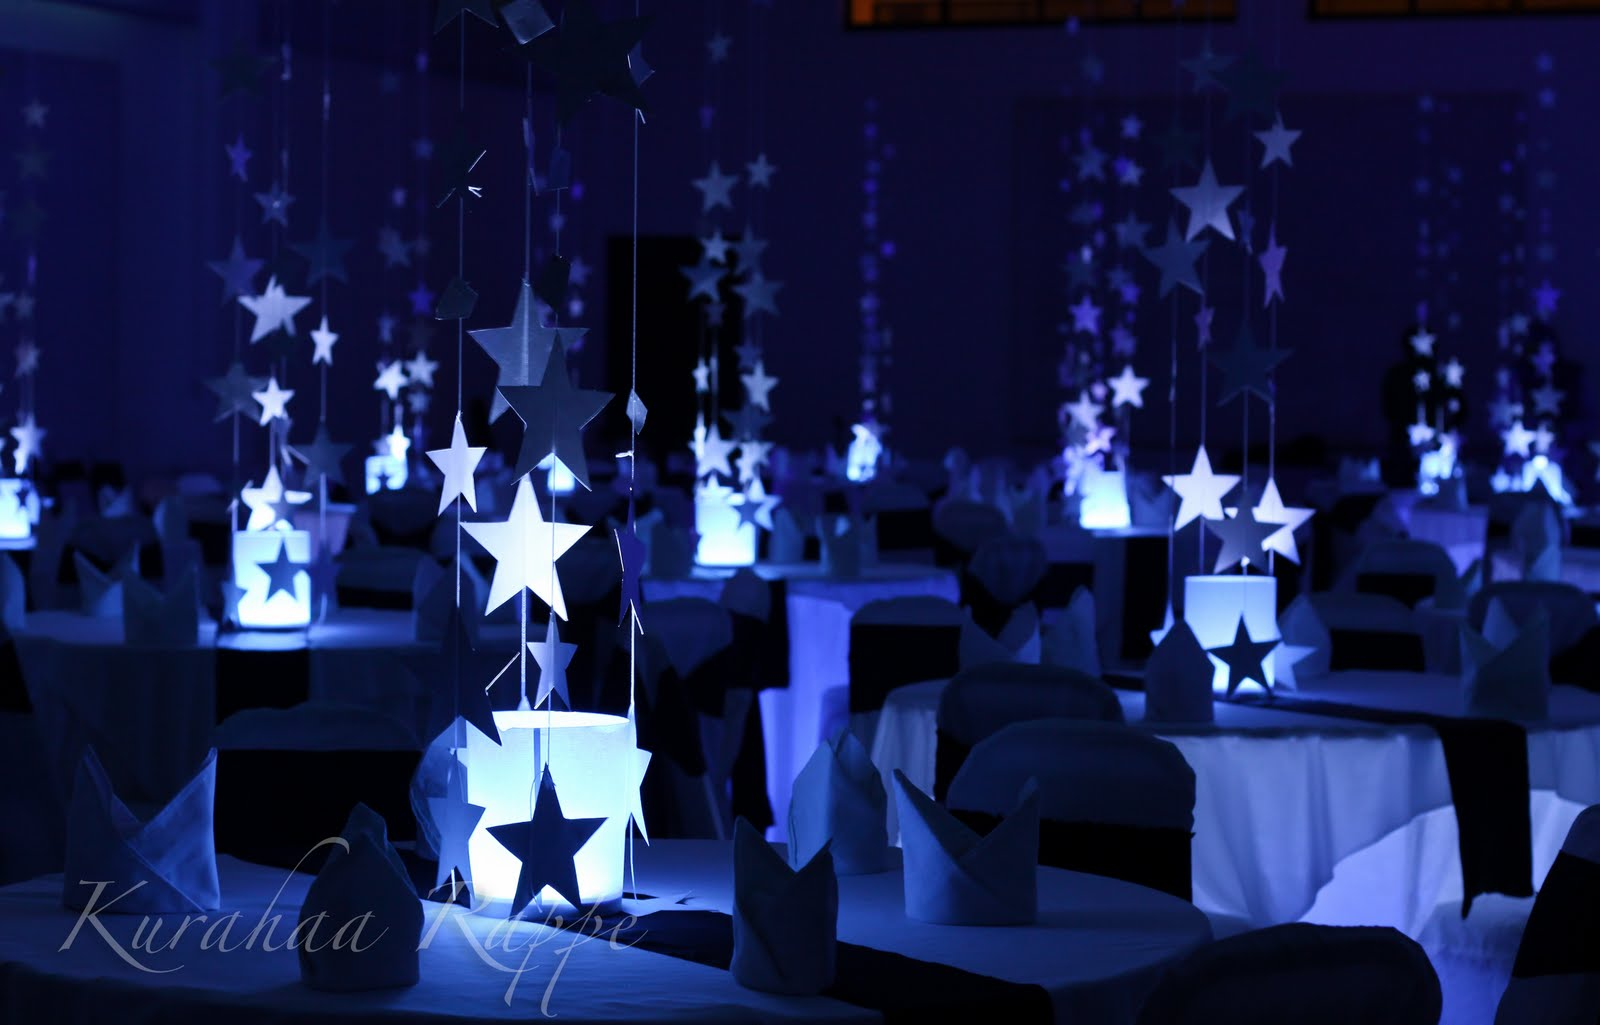 Sep 21, · Find graduation party ideas to inspire you, from food and drink recipes to graduation decoration tips.